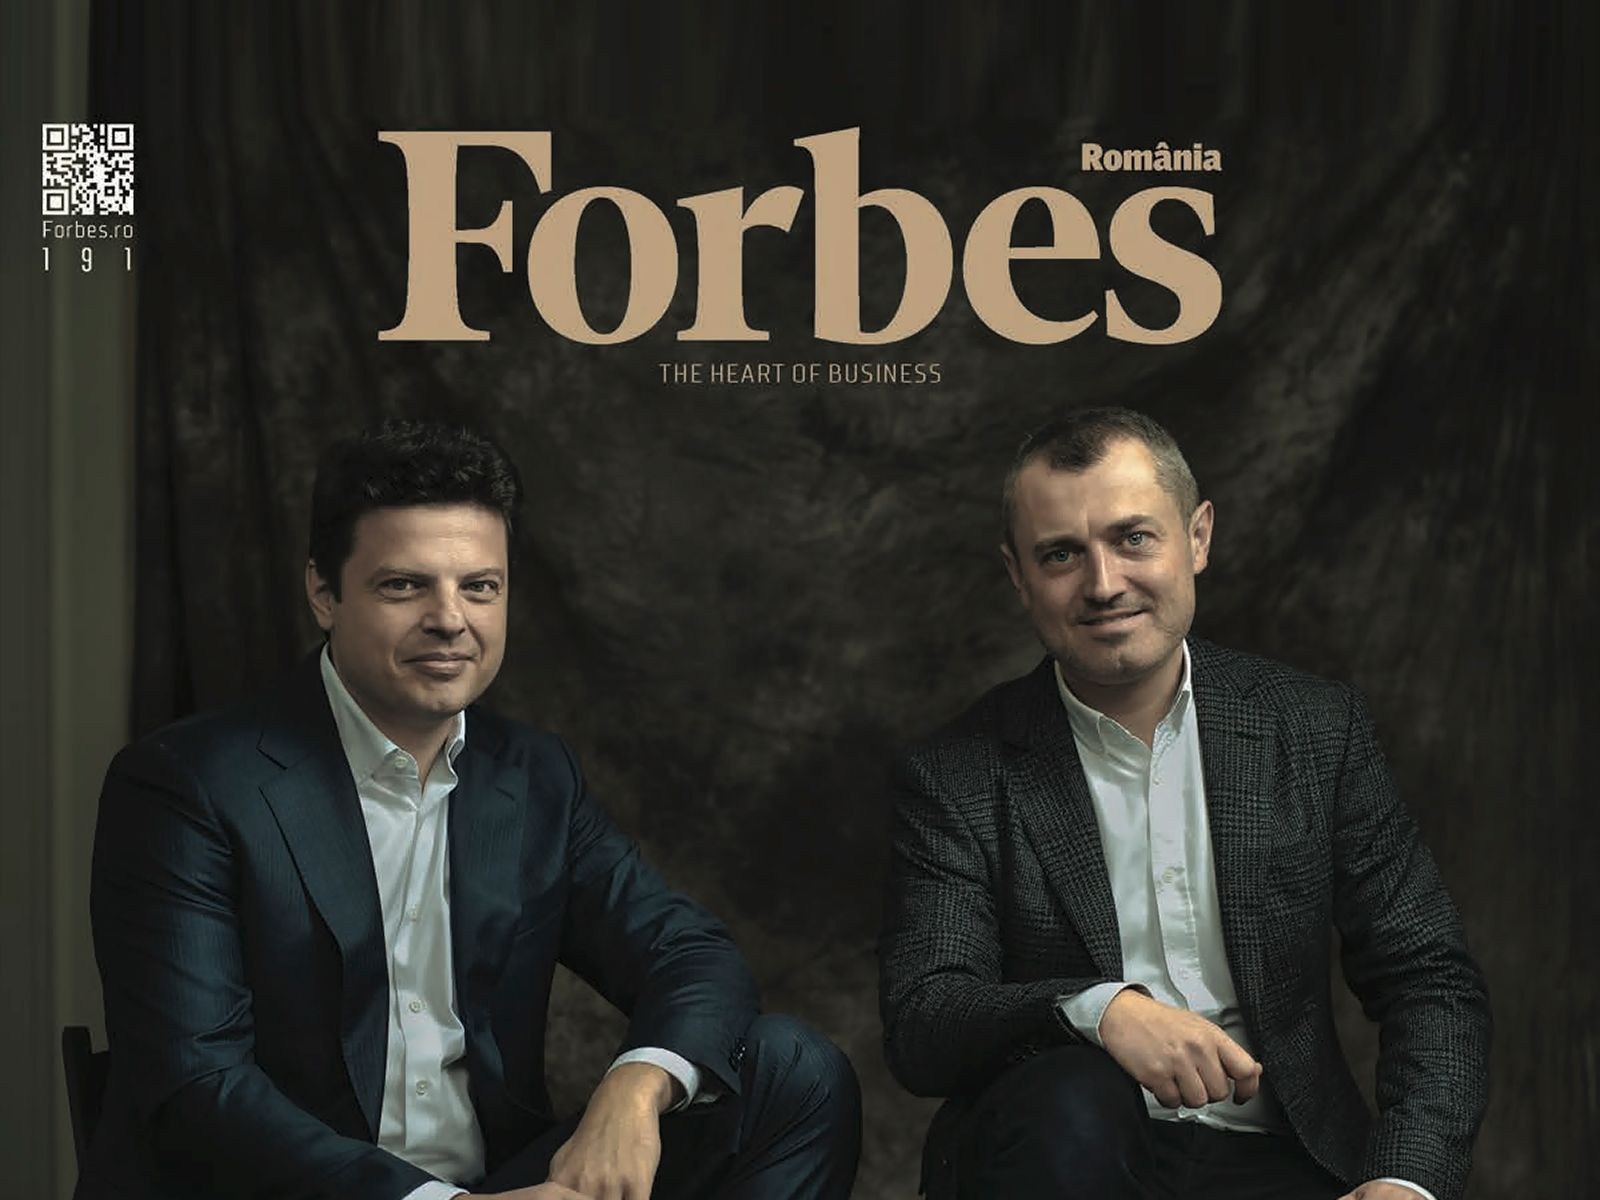 Victor Căpitanu and Andrei Diaconescu, founders of One United Properties, speak about their beginnings in the business and future insights of the company in the latest Forbes Romania cover story